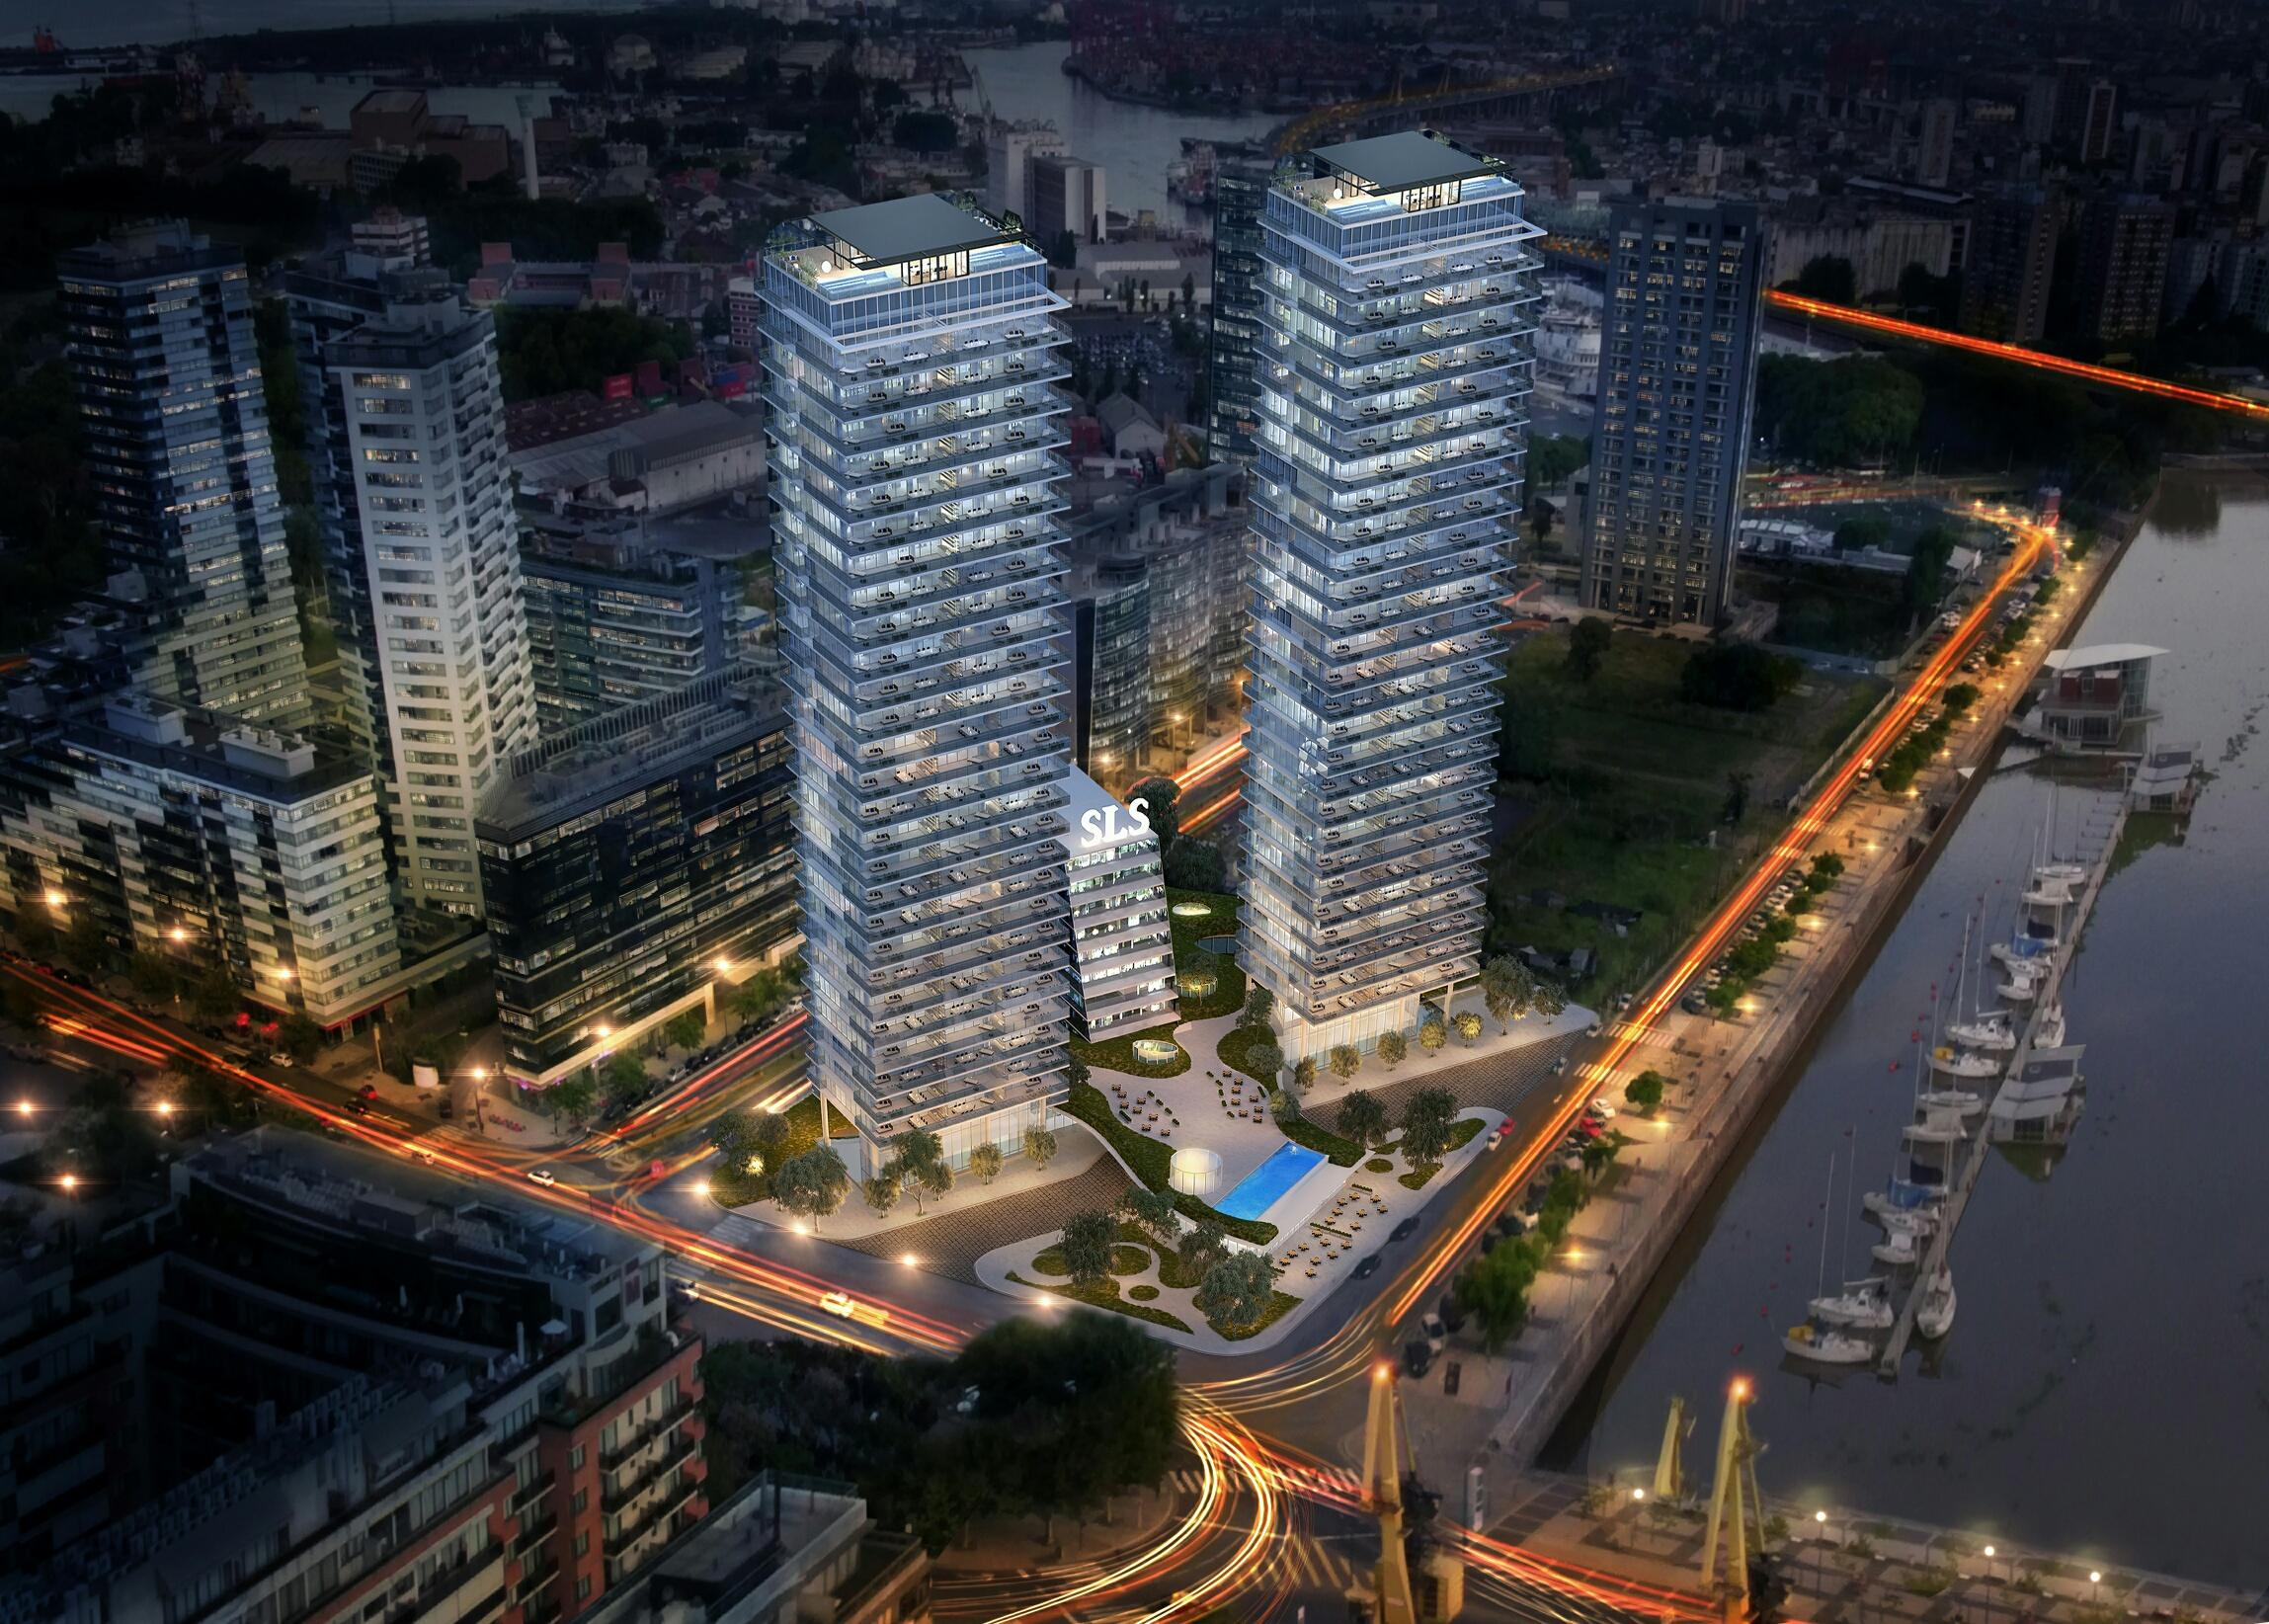 sls puerto madero night rendering